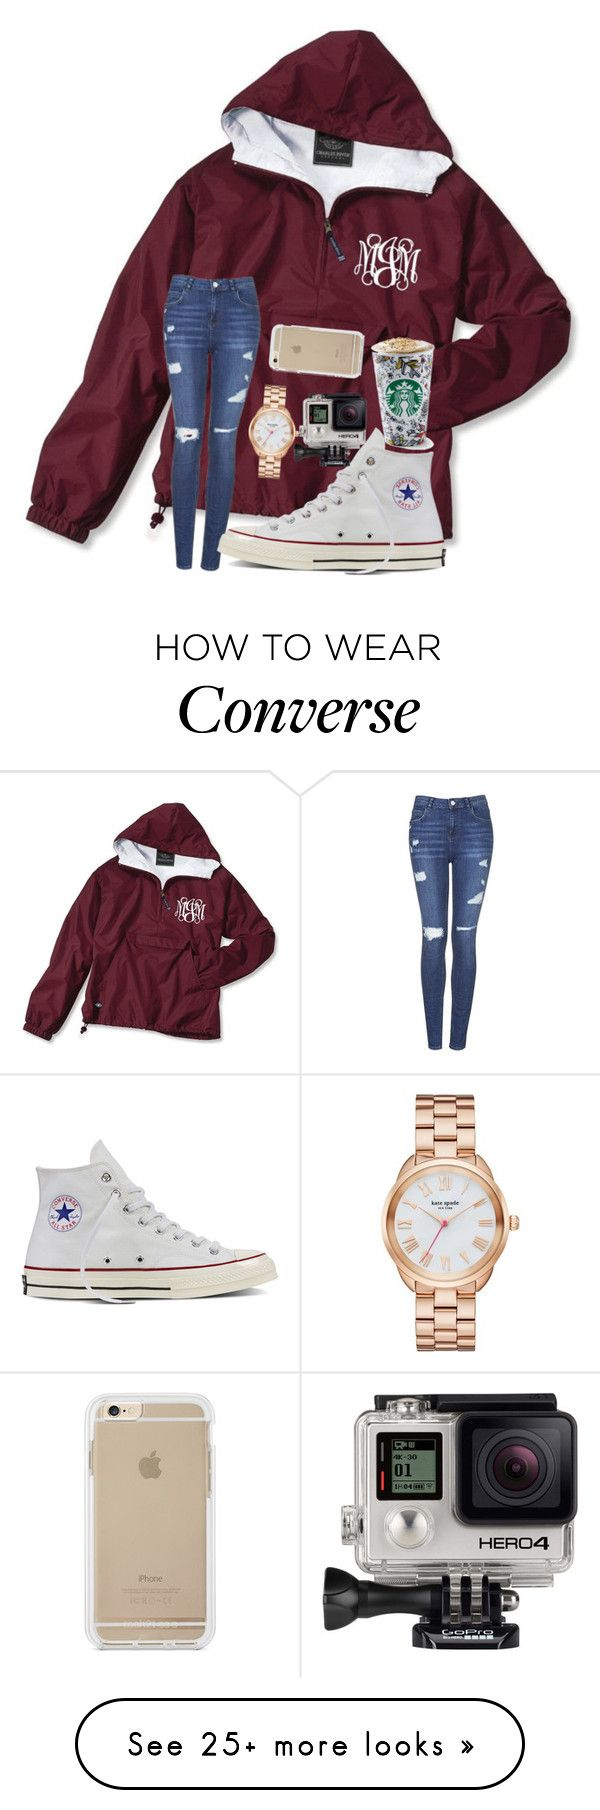 """Who's ready for fall??"" by mmprep on Polyvore featuring Topshop, Converse, Kate Spade and GoPro"